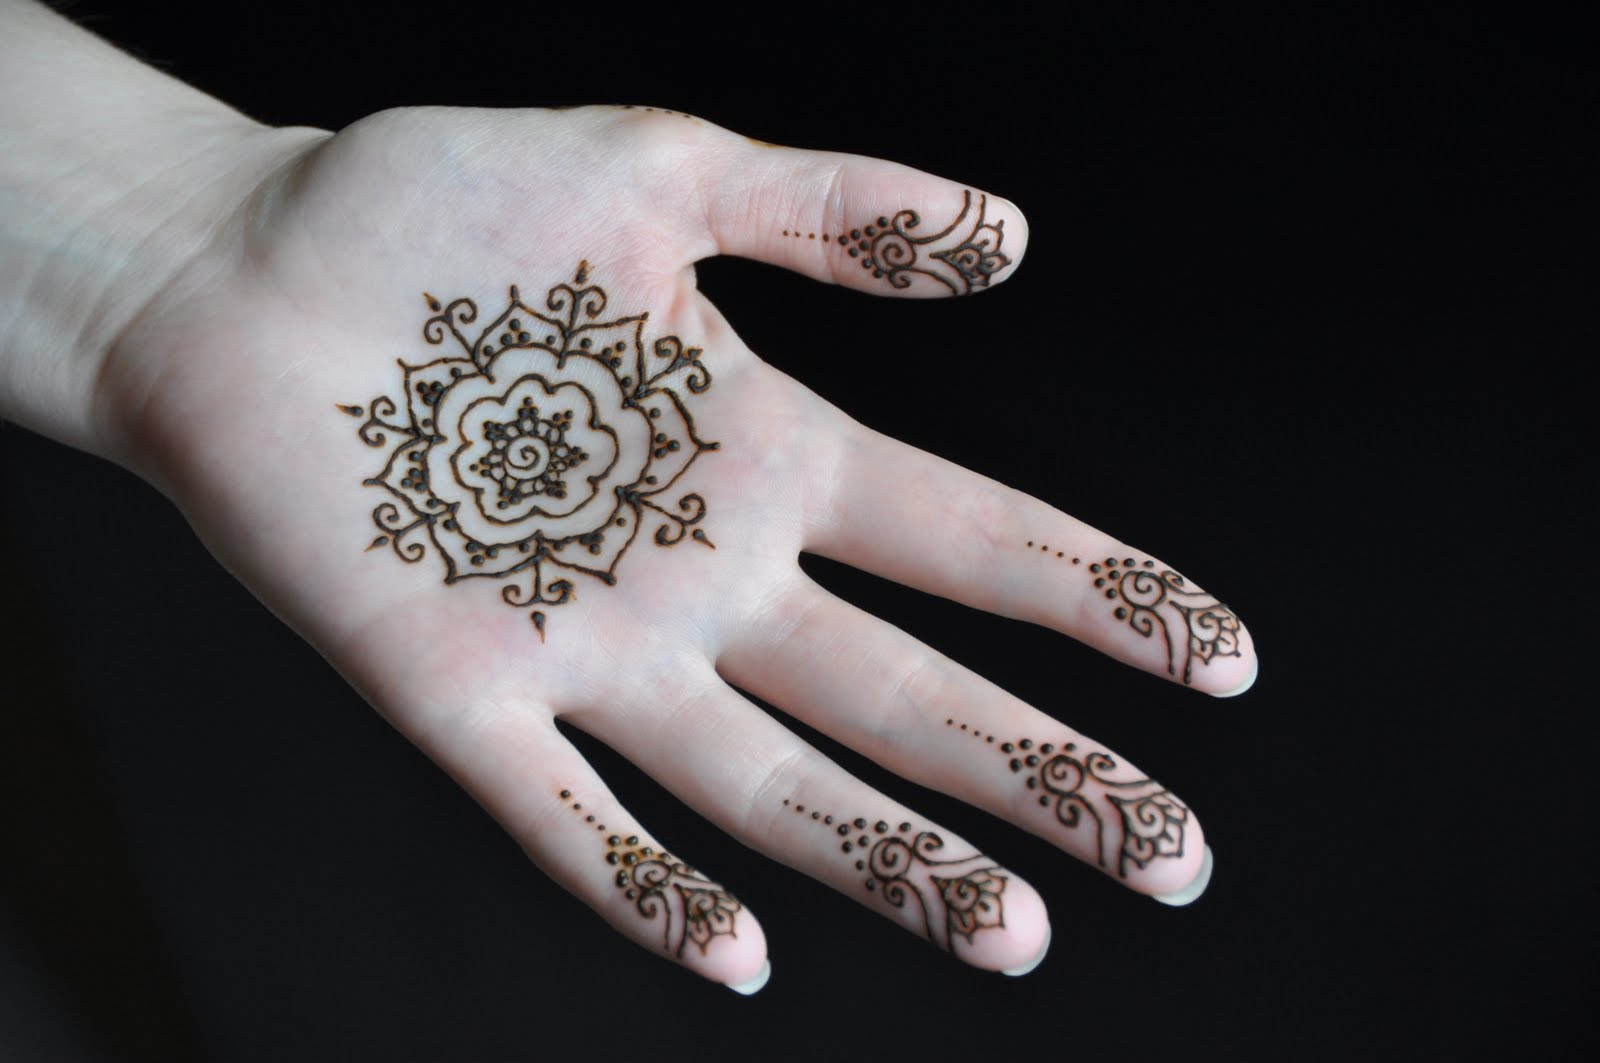 Designs Of Mehndi For Palm : Simple chic mehendi designs to try on palm u keep me stylish